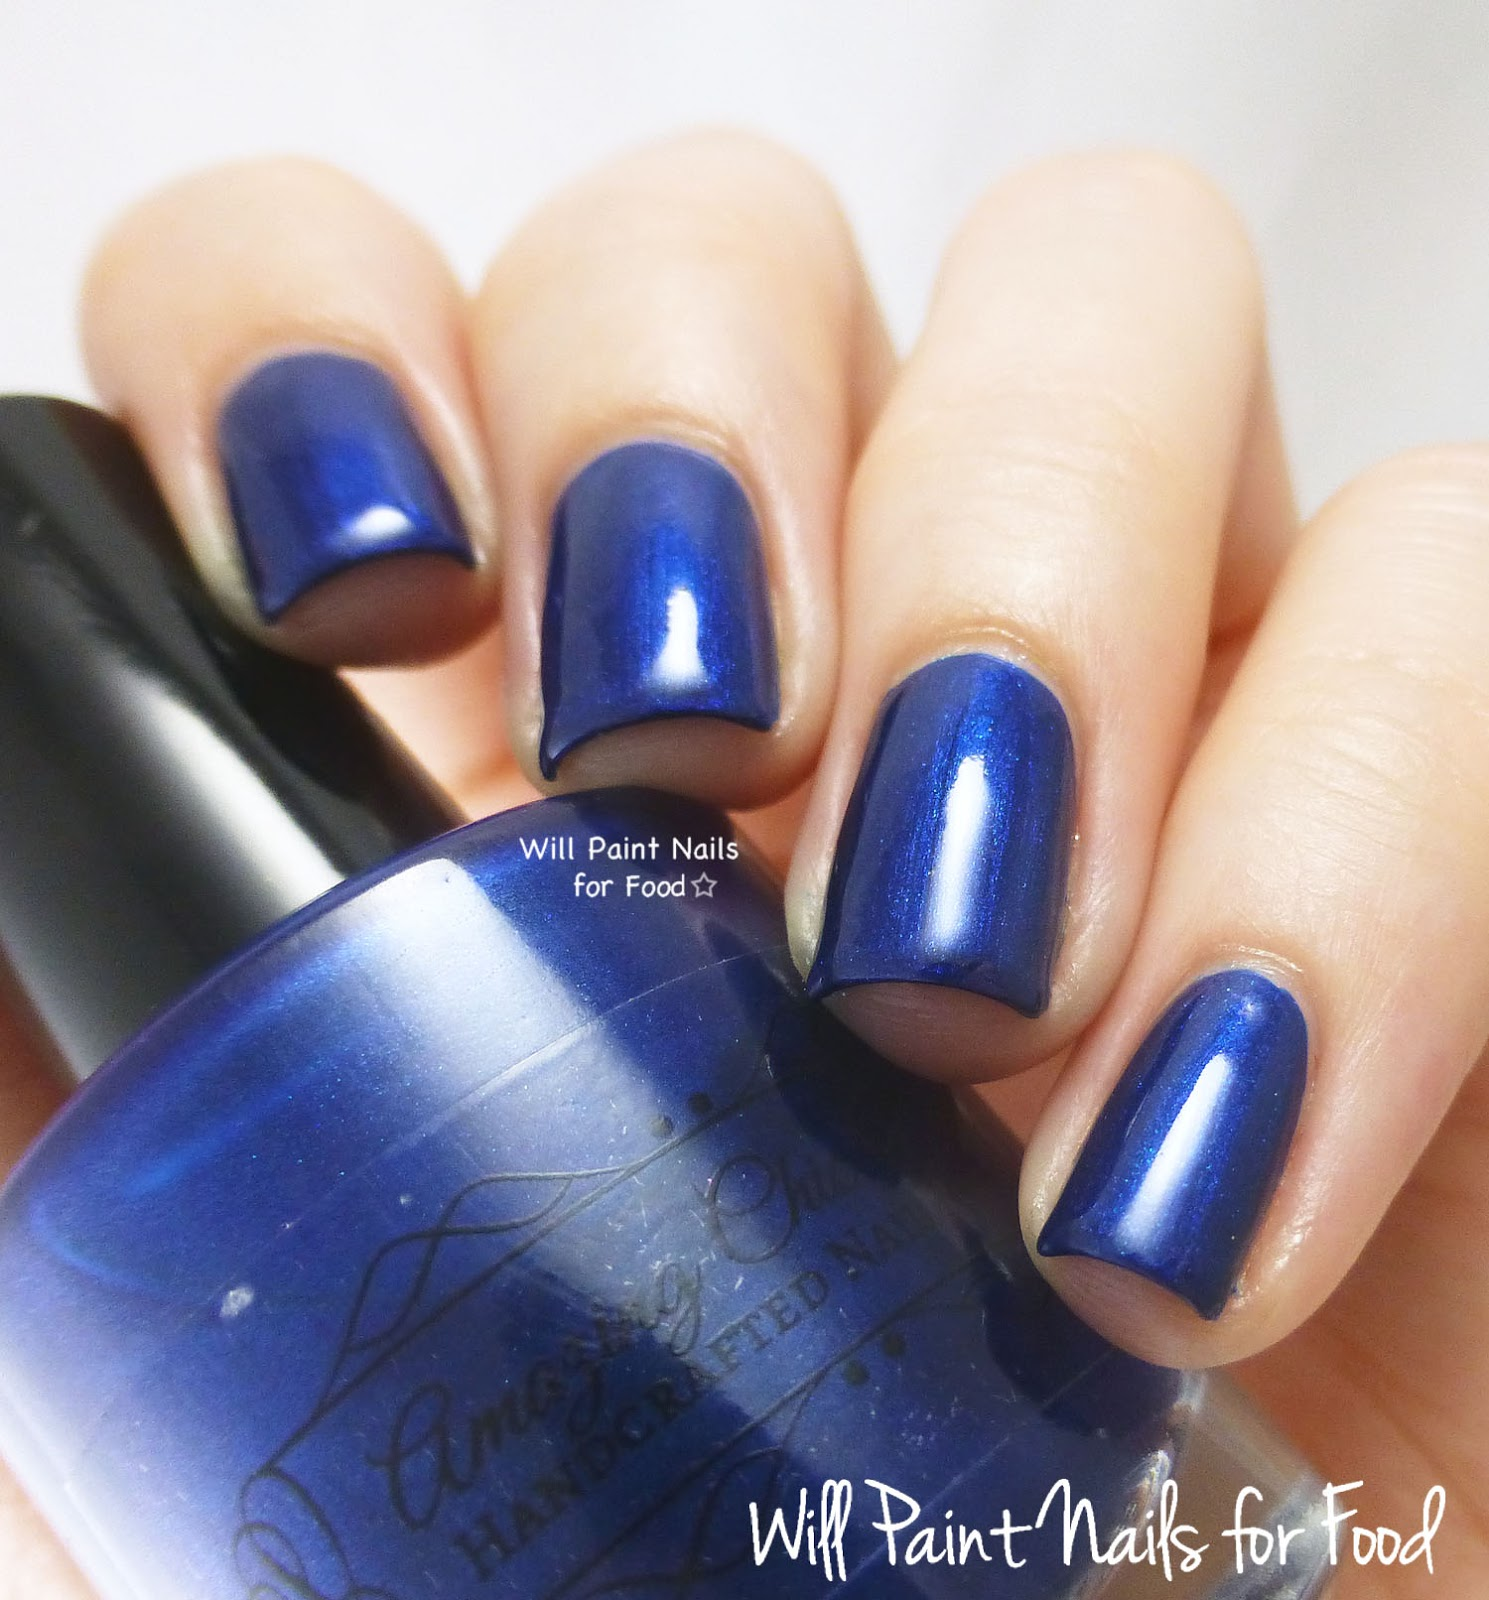 Amazing Chic Nails School Uniform swatch